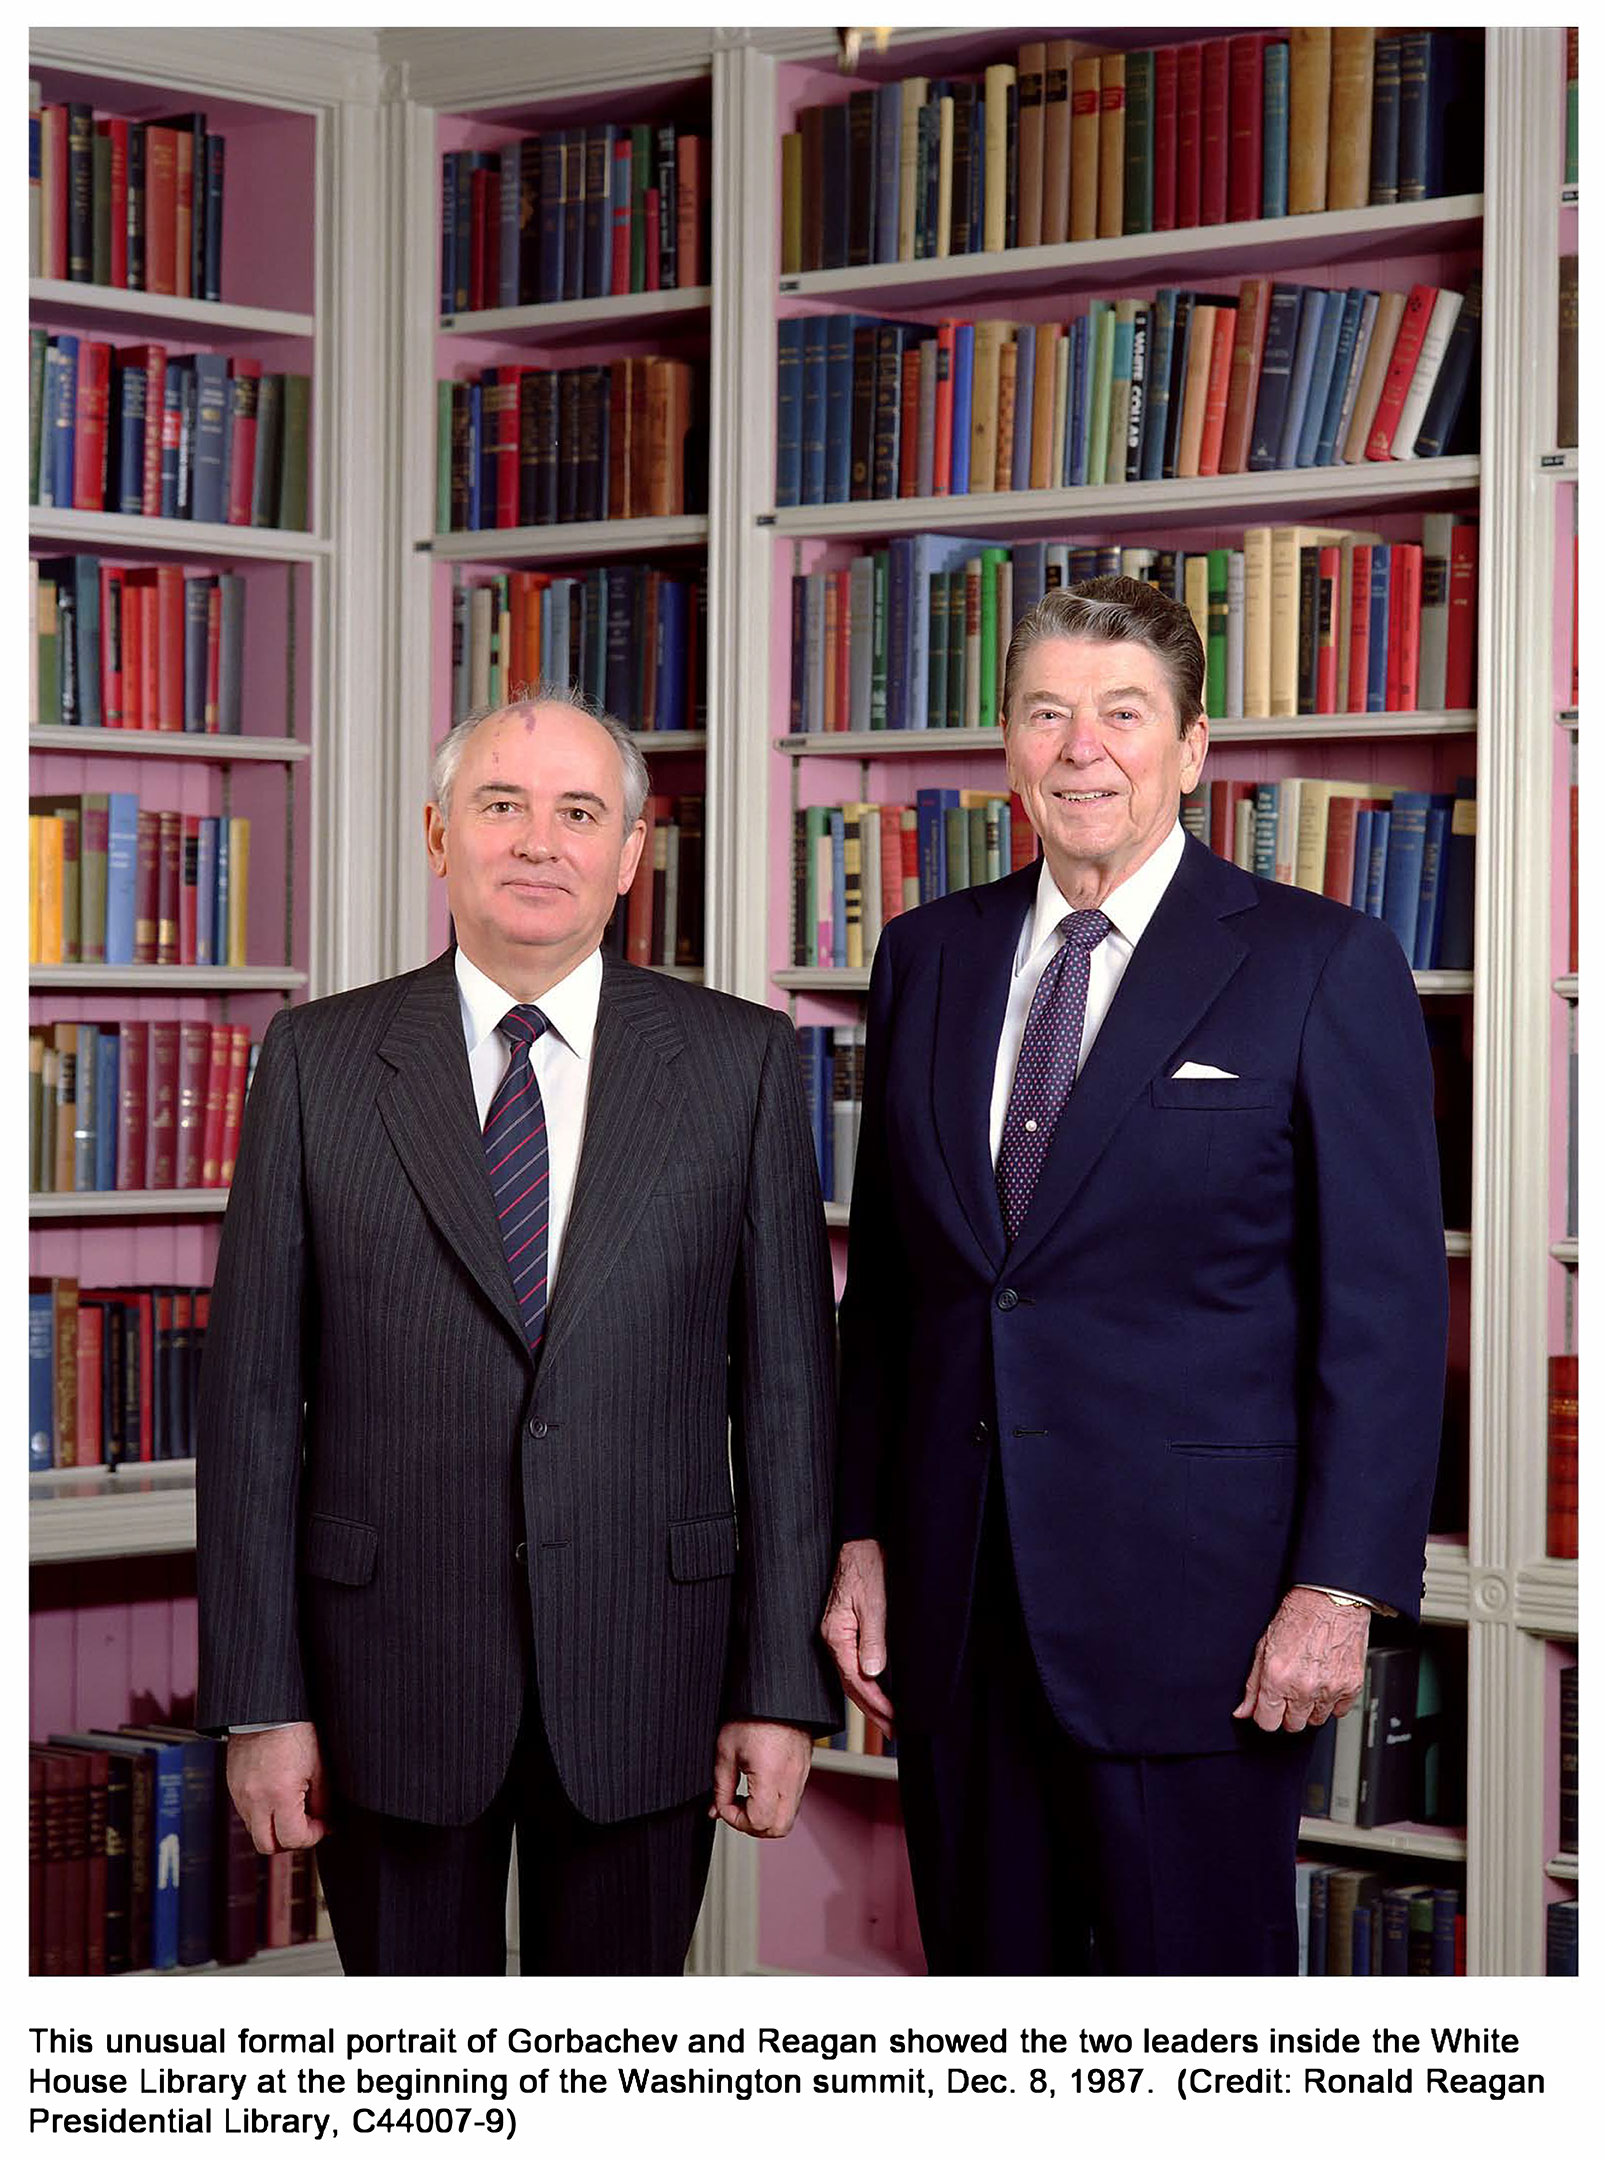 This unusual formal portrait of Gorbachev and Reagan showed the two leaders inside the White House Library at the beginning of the Washington summit, Оес. 8, 1987.